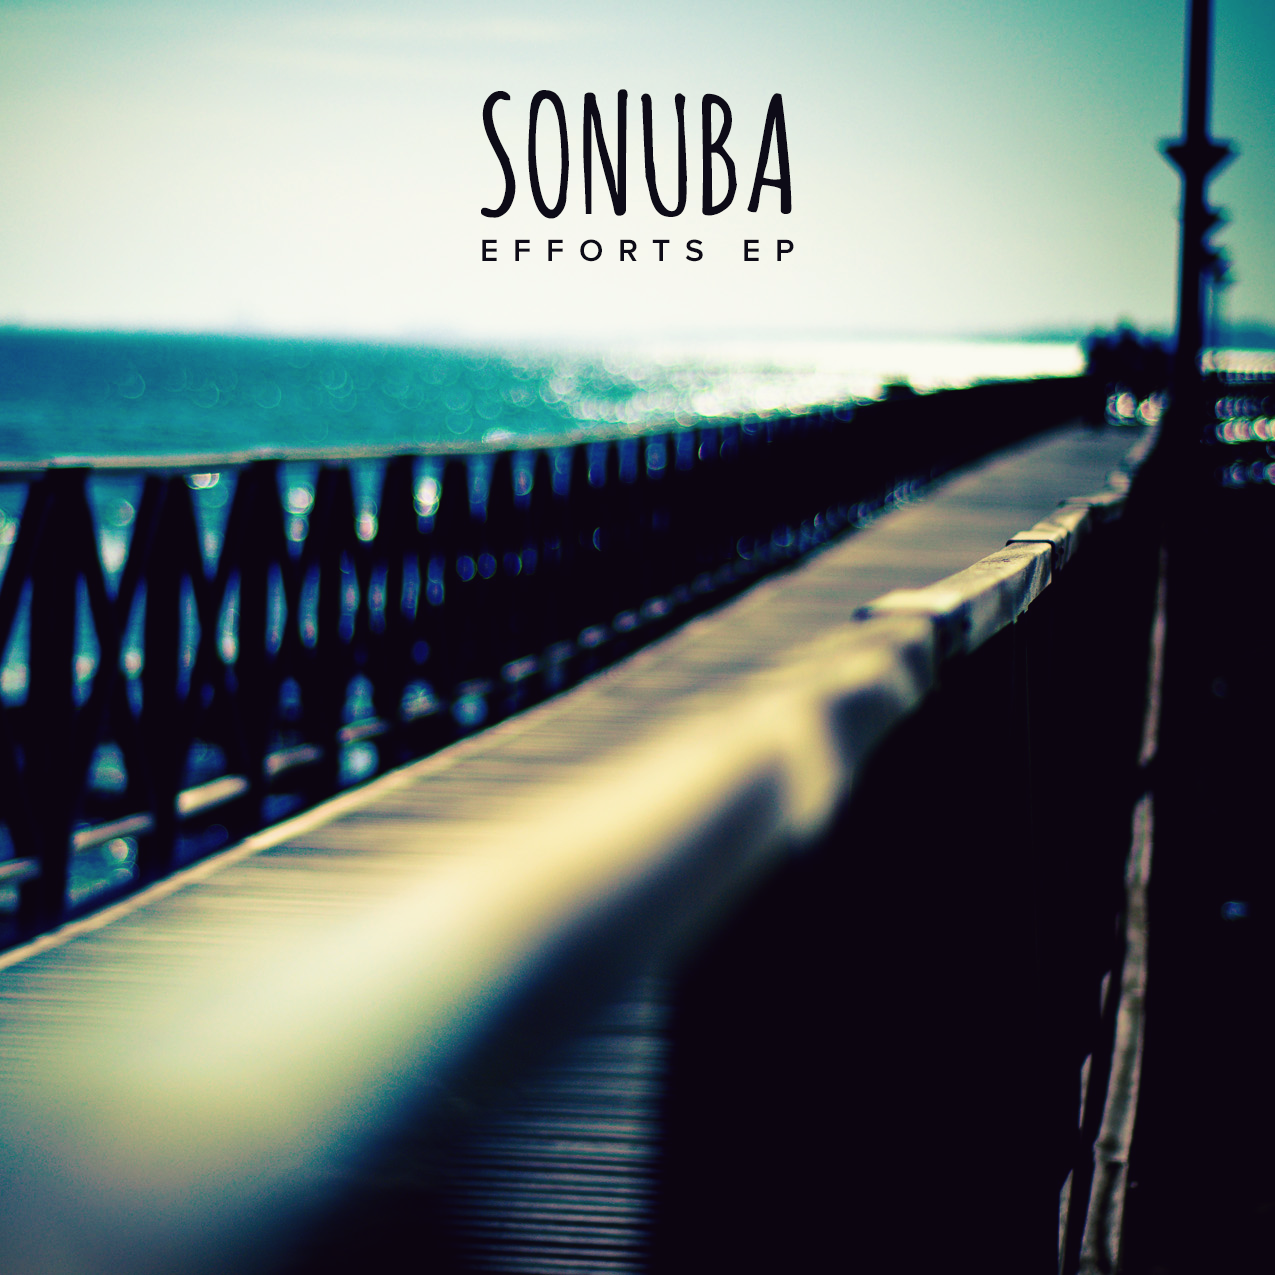 Free Download: Sonuba – Efforts EP